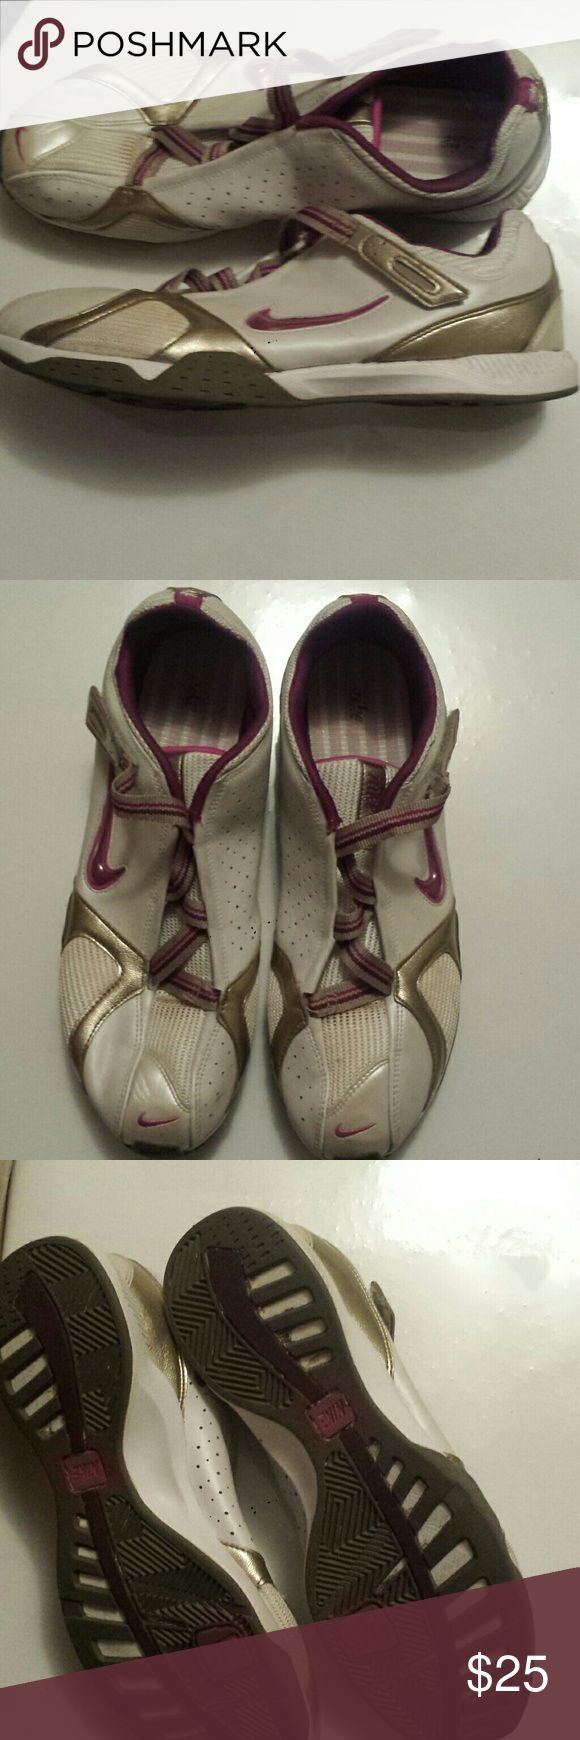 Nike white, purple and pewter shoes Normal wear Nike Shoes Athletic Shoes